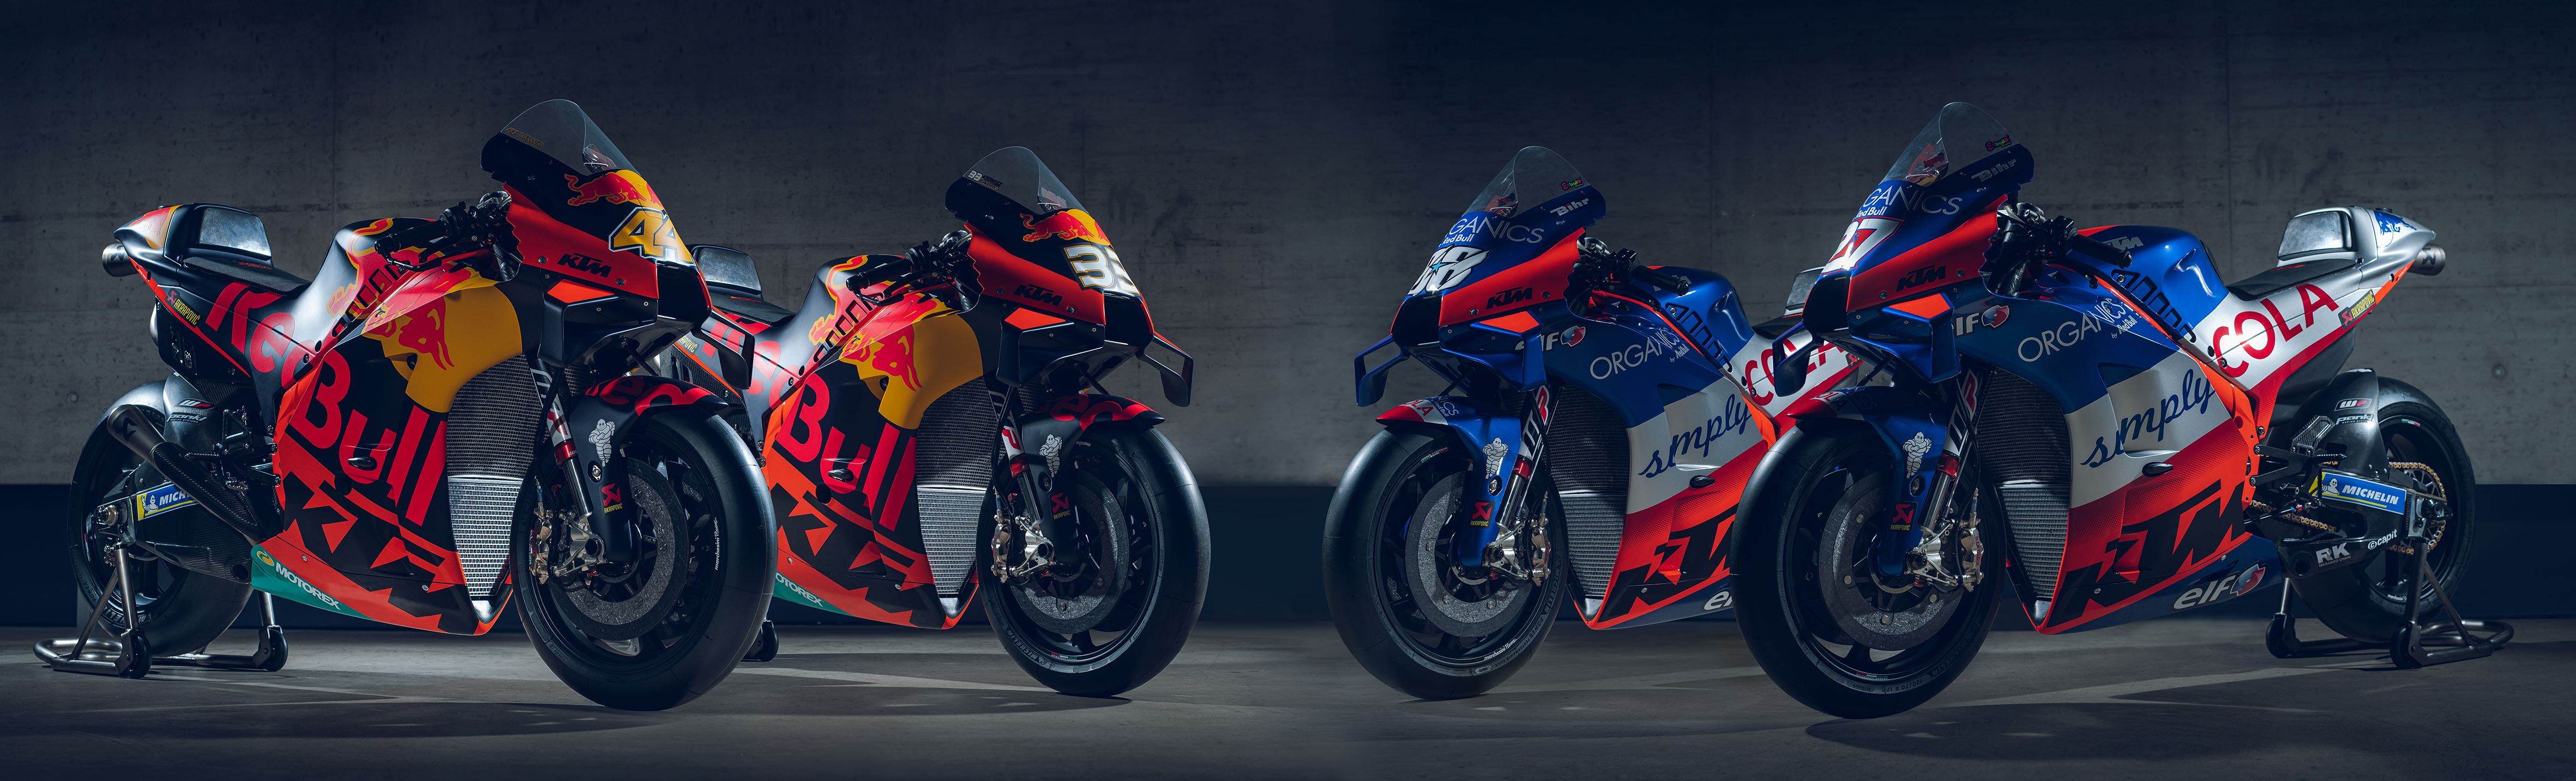 Red Bull KTM presents new race colours for its fourth MotoGP season